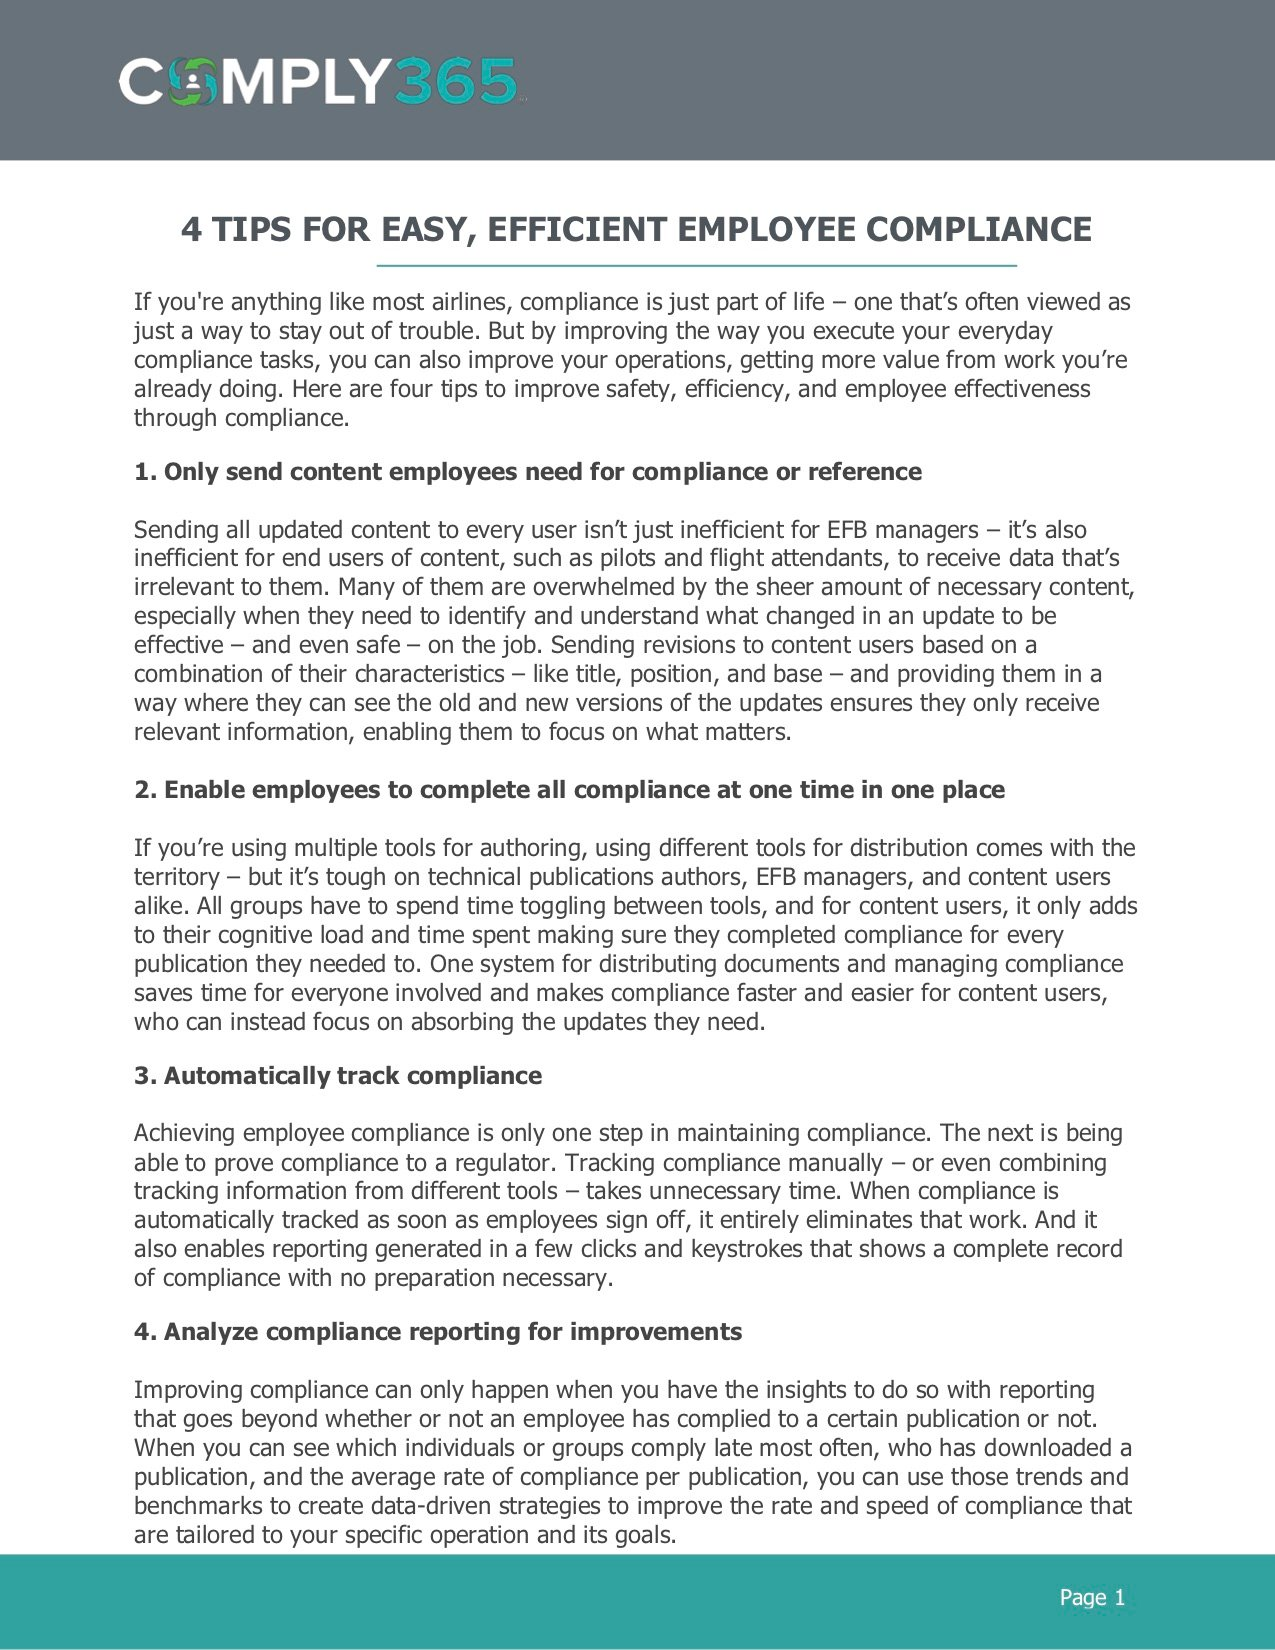 4 Tips for Easy, Efficient Employee Compliance-1